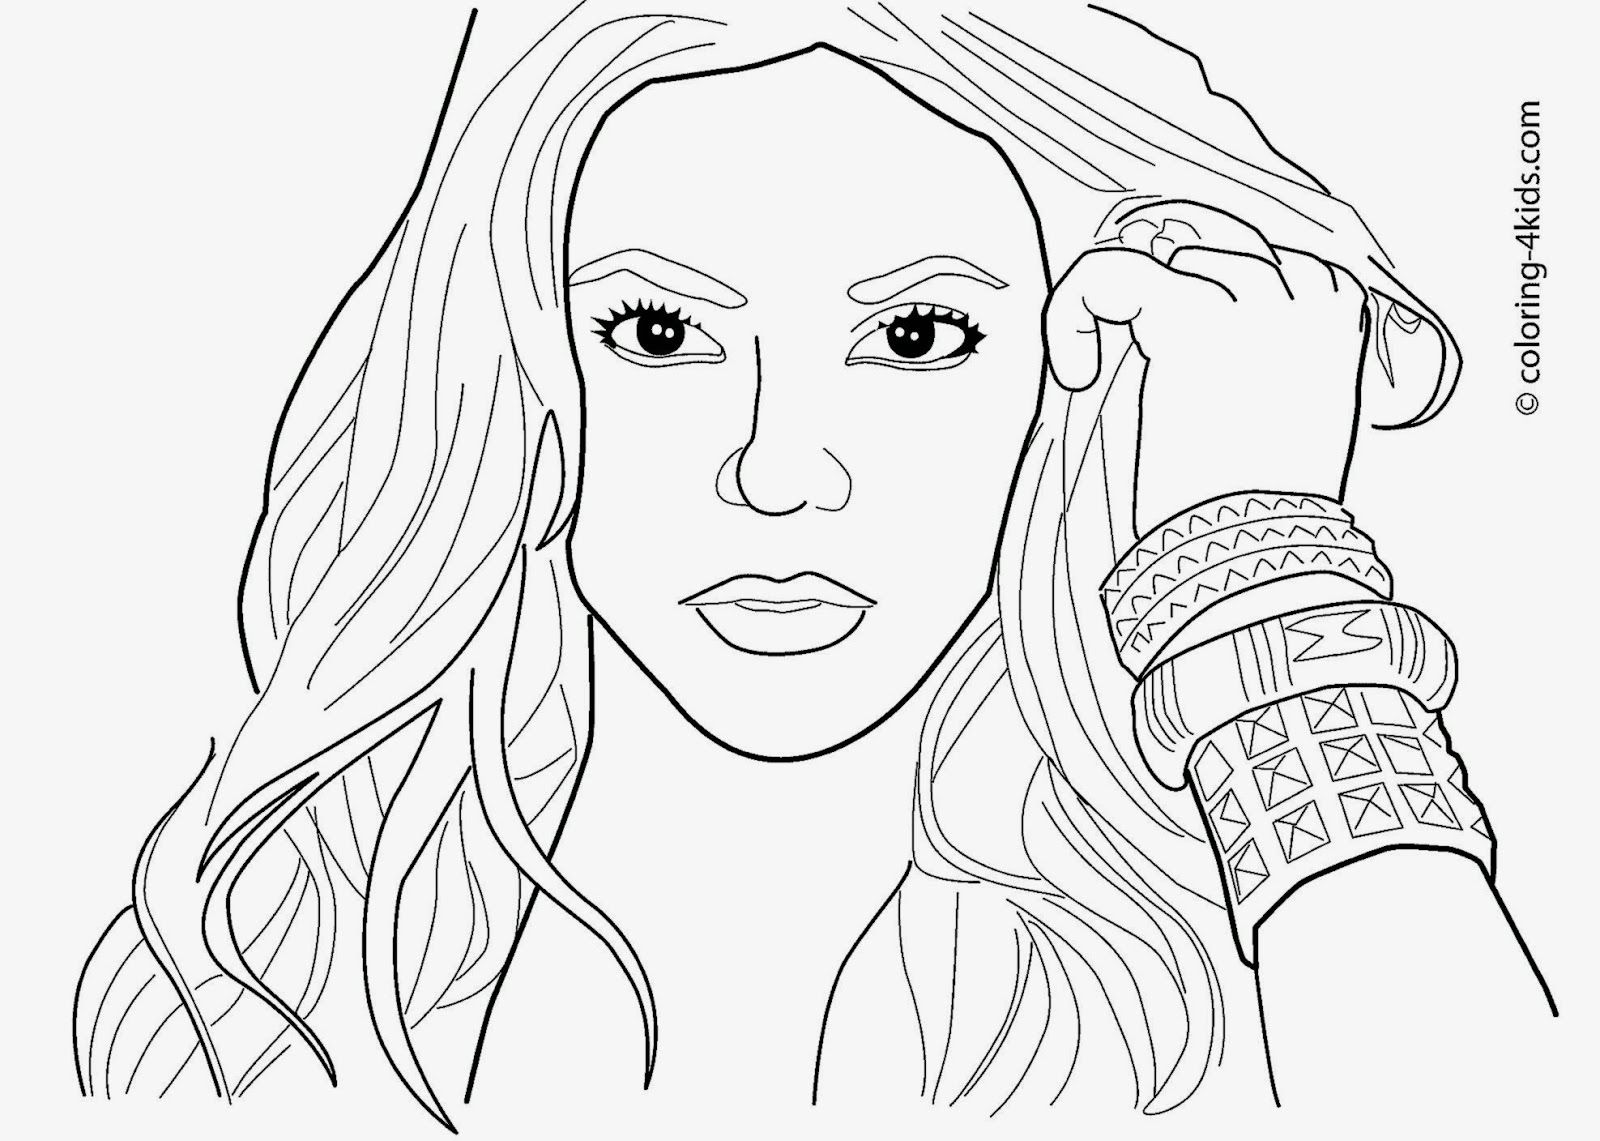 celebrity coloring pages free coloring pages - Celebrity Coloring Pages Print